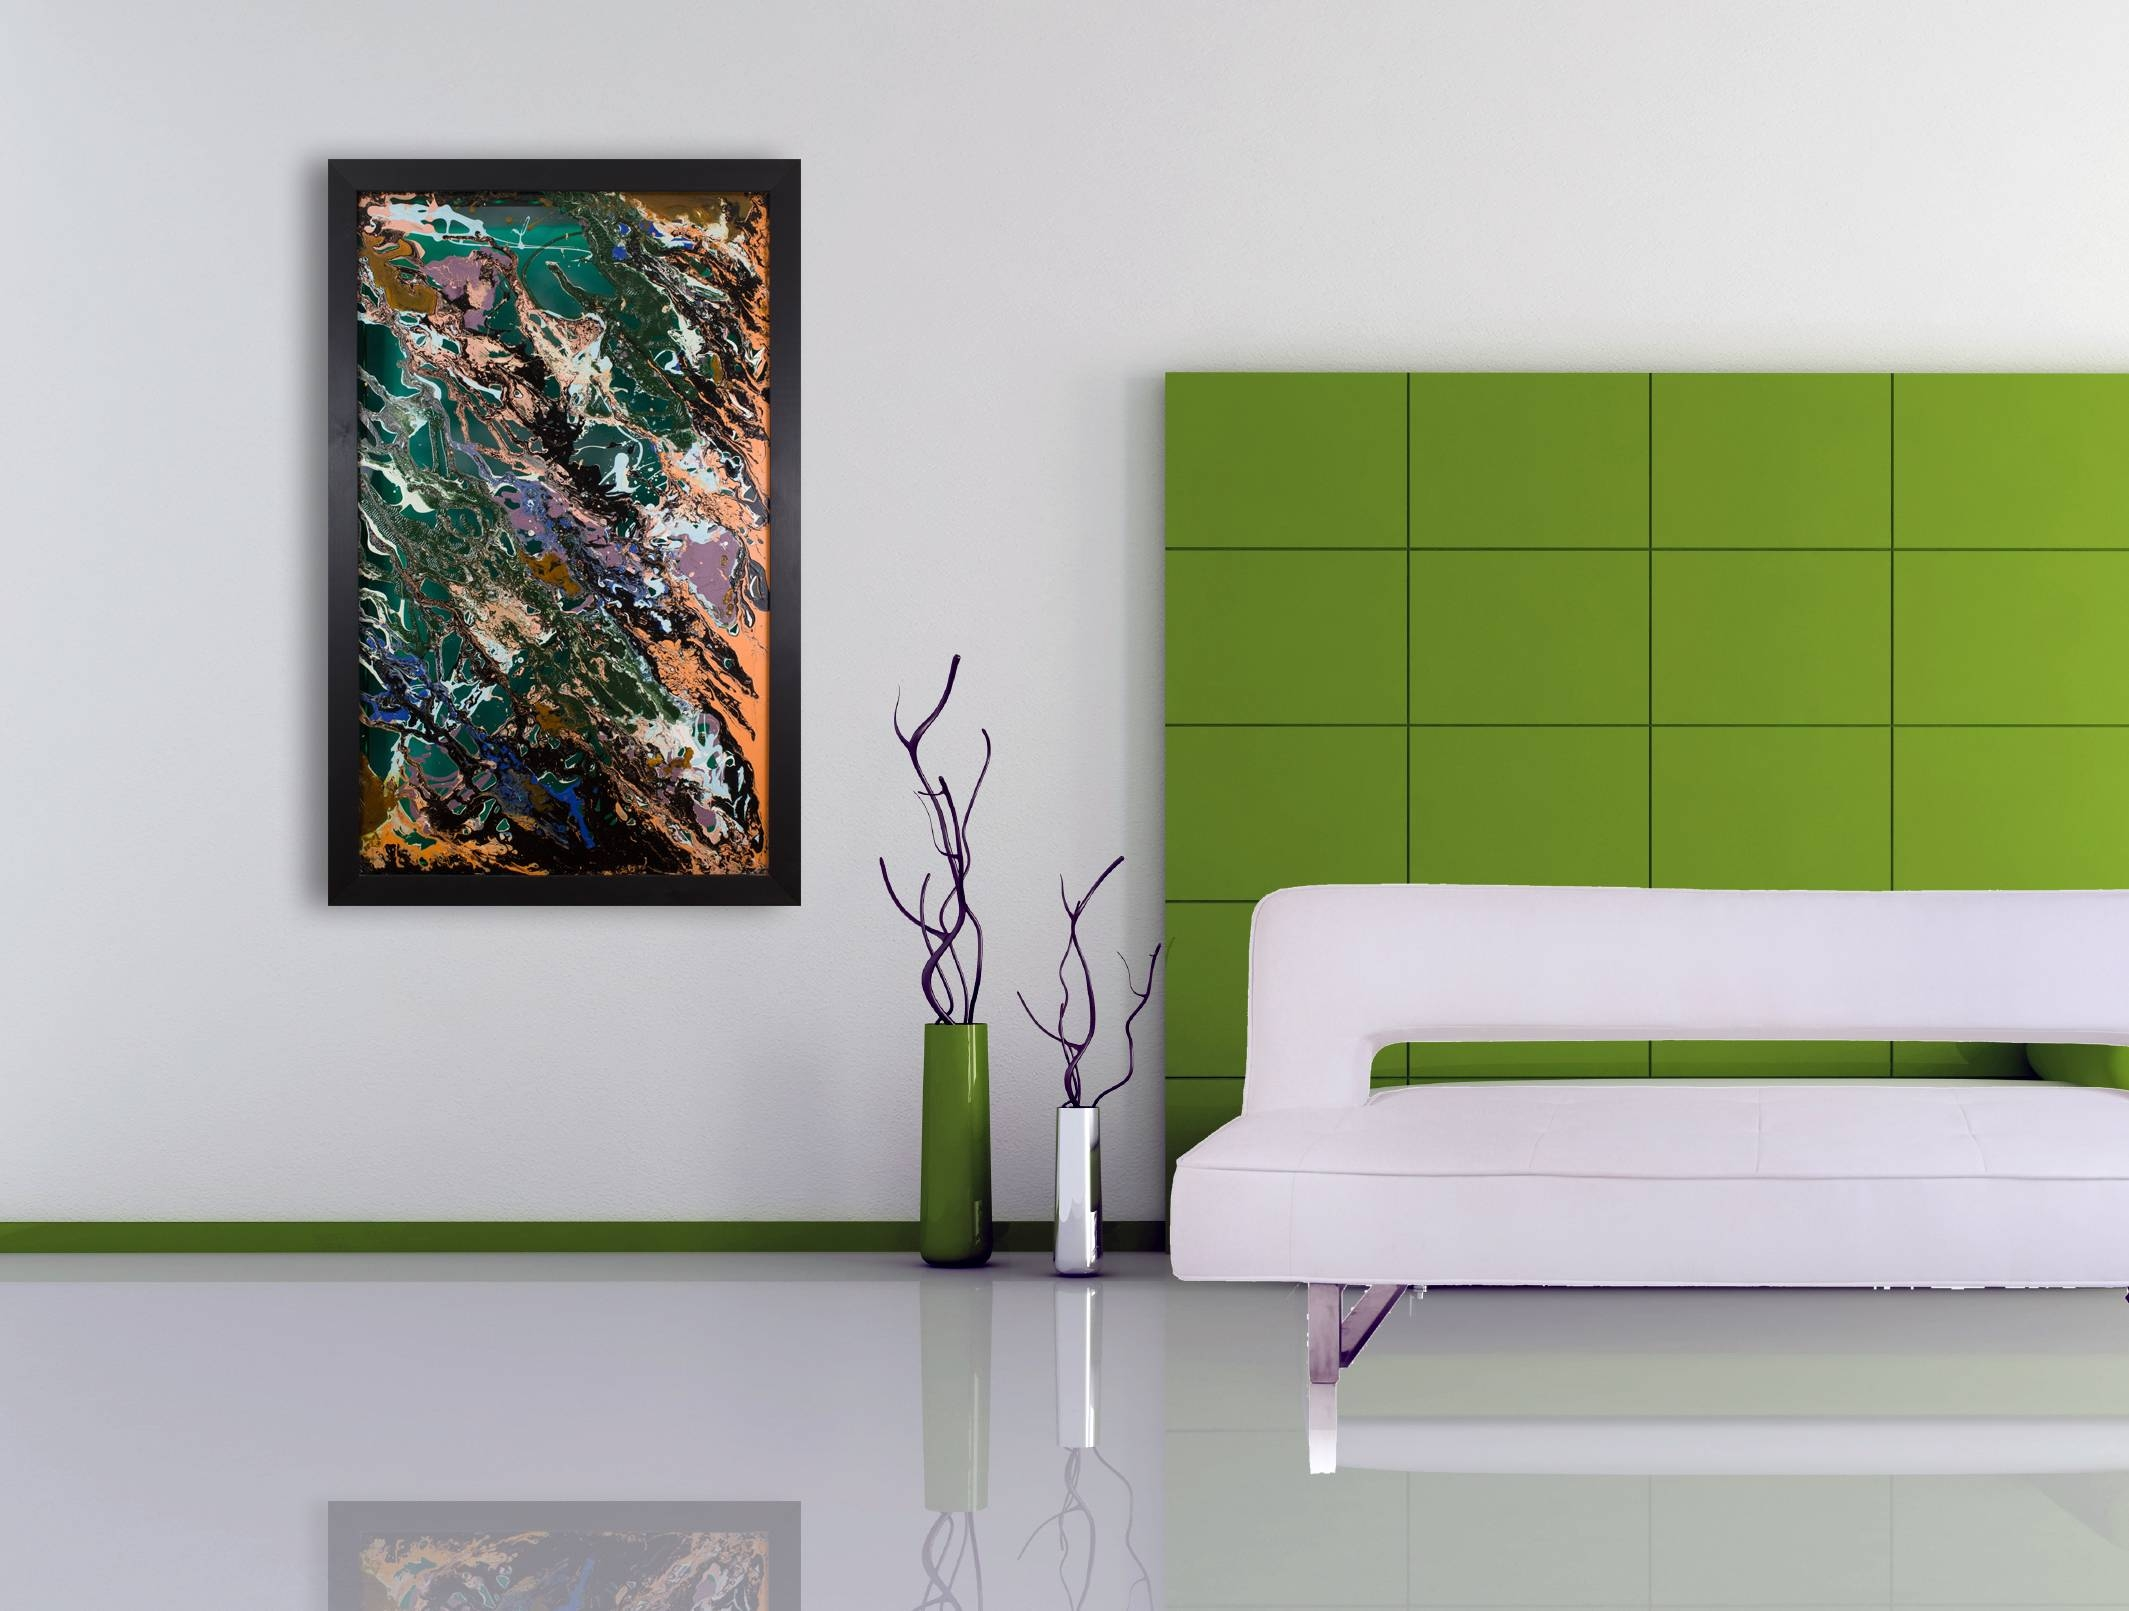 Amusing Unusual Metal Wall Art Photo Ideas – Surripui With Most Recently Released Unusual Metal Wall Art (View 2 of 20)